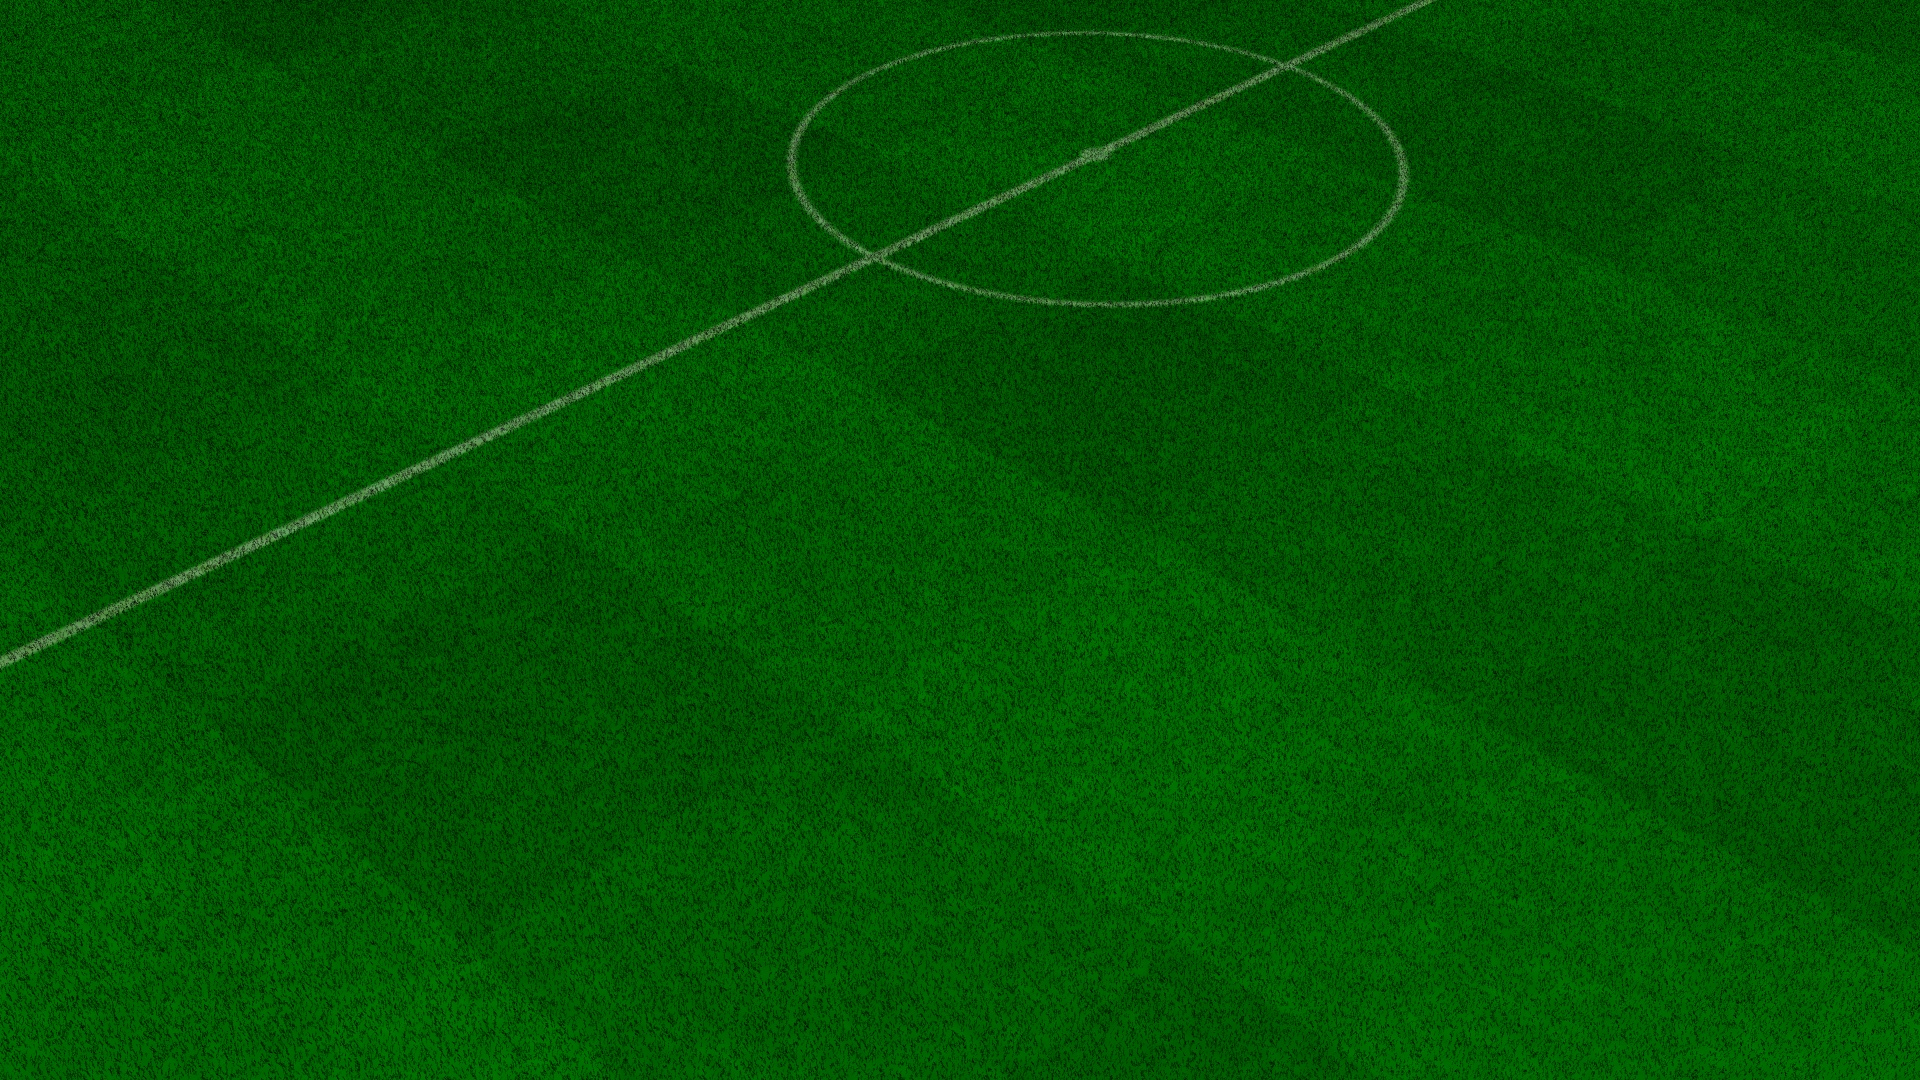 Soccer cool background